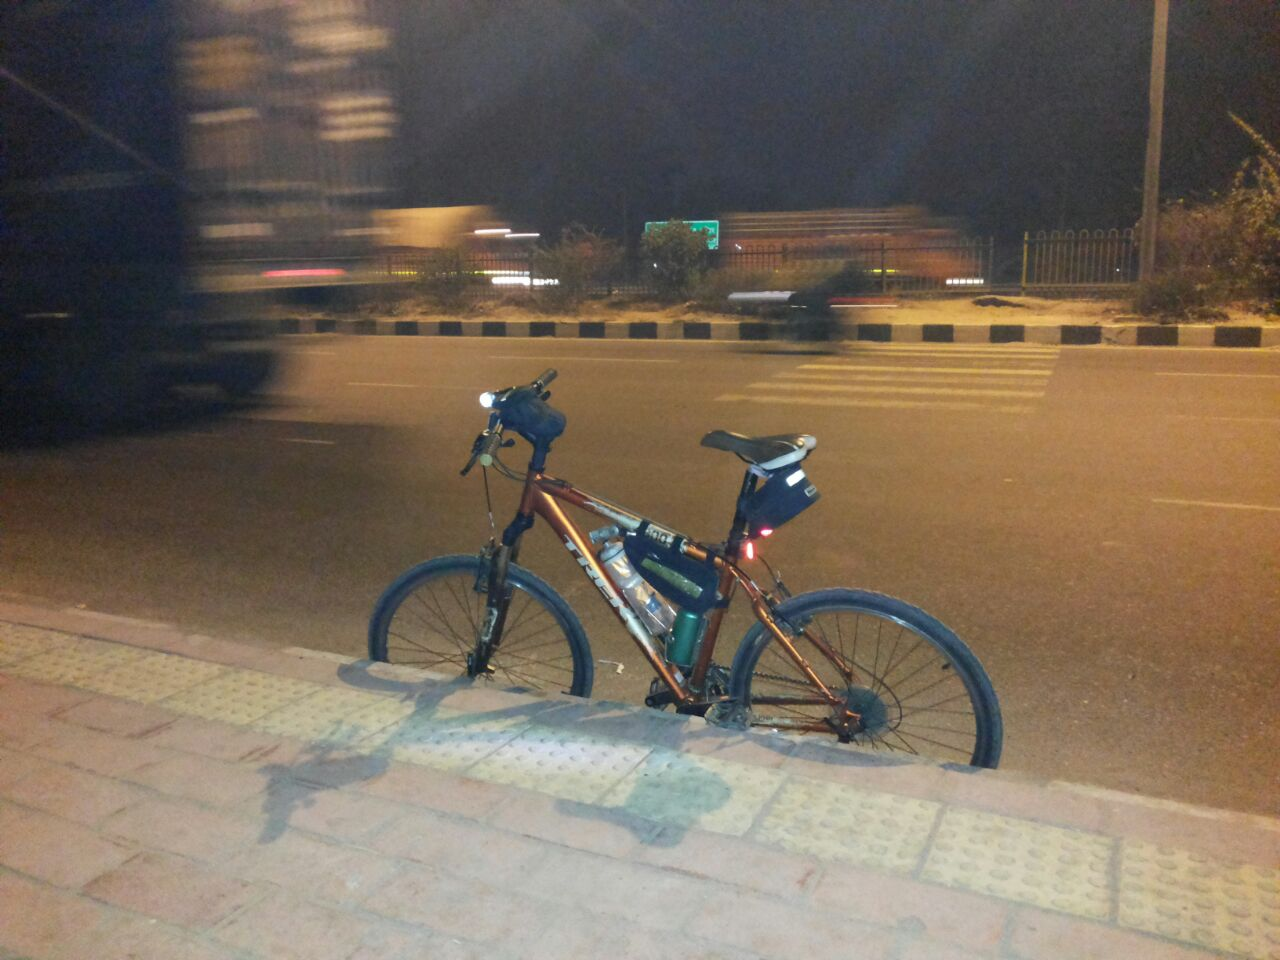 My Steed - Taking a break after entering Delhi